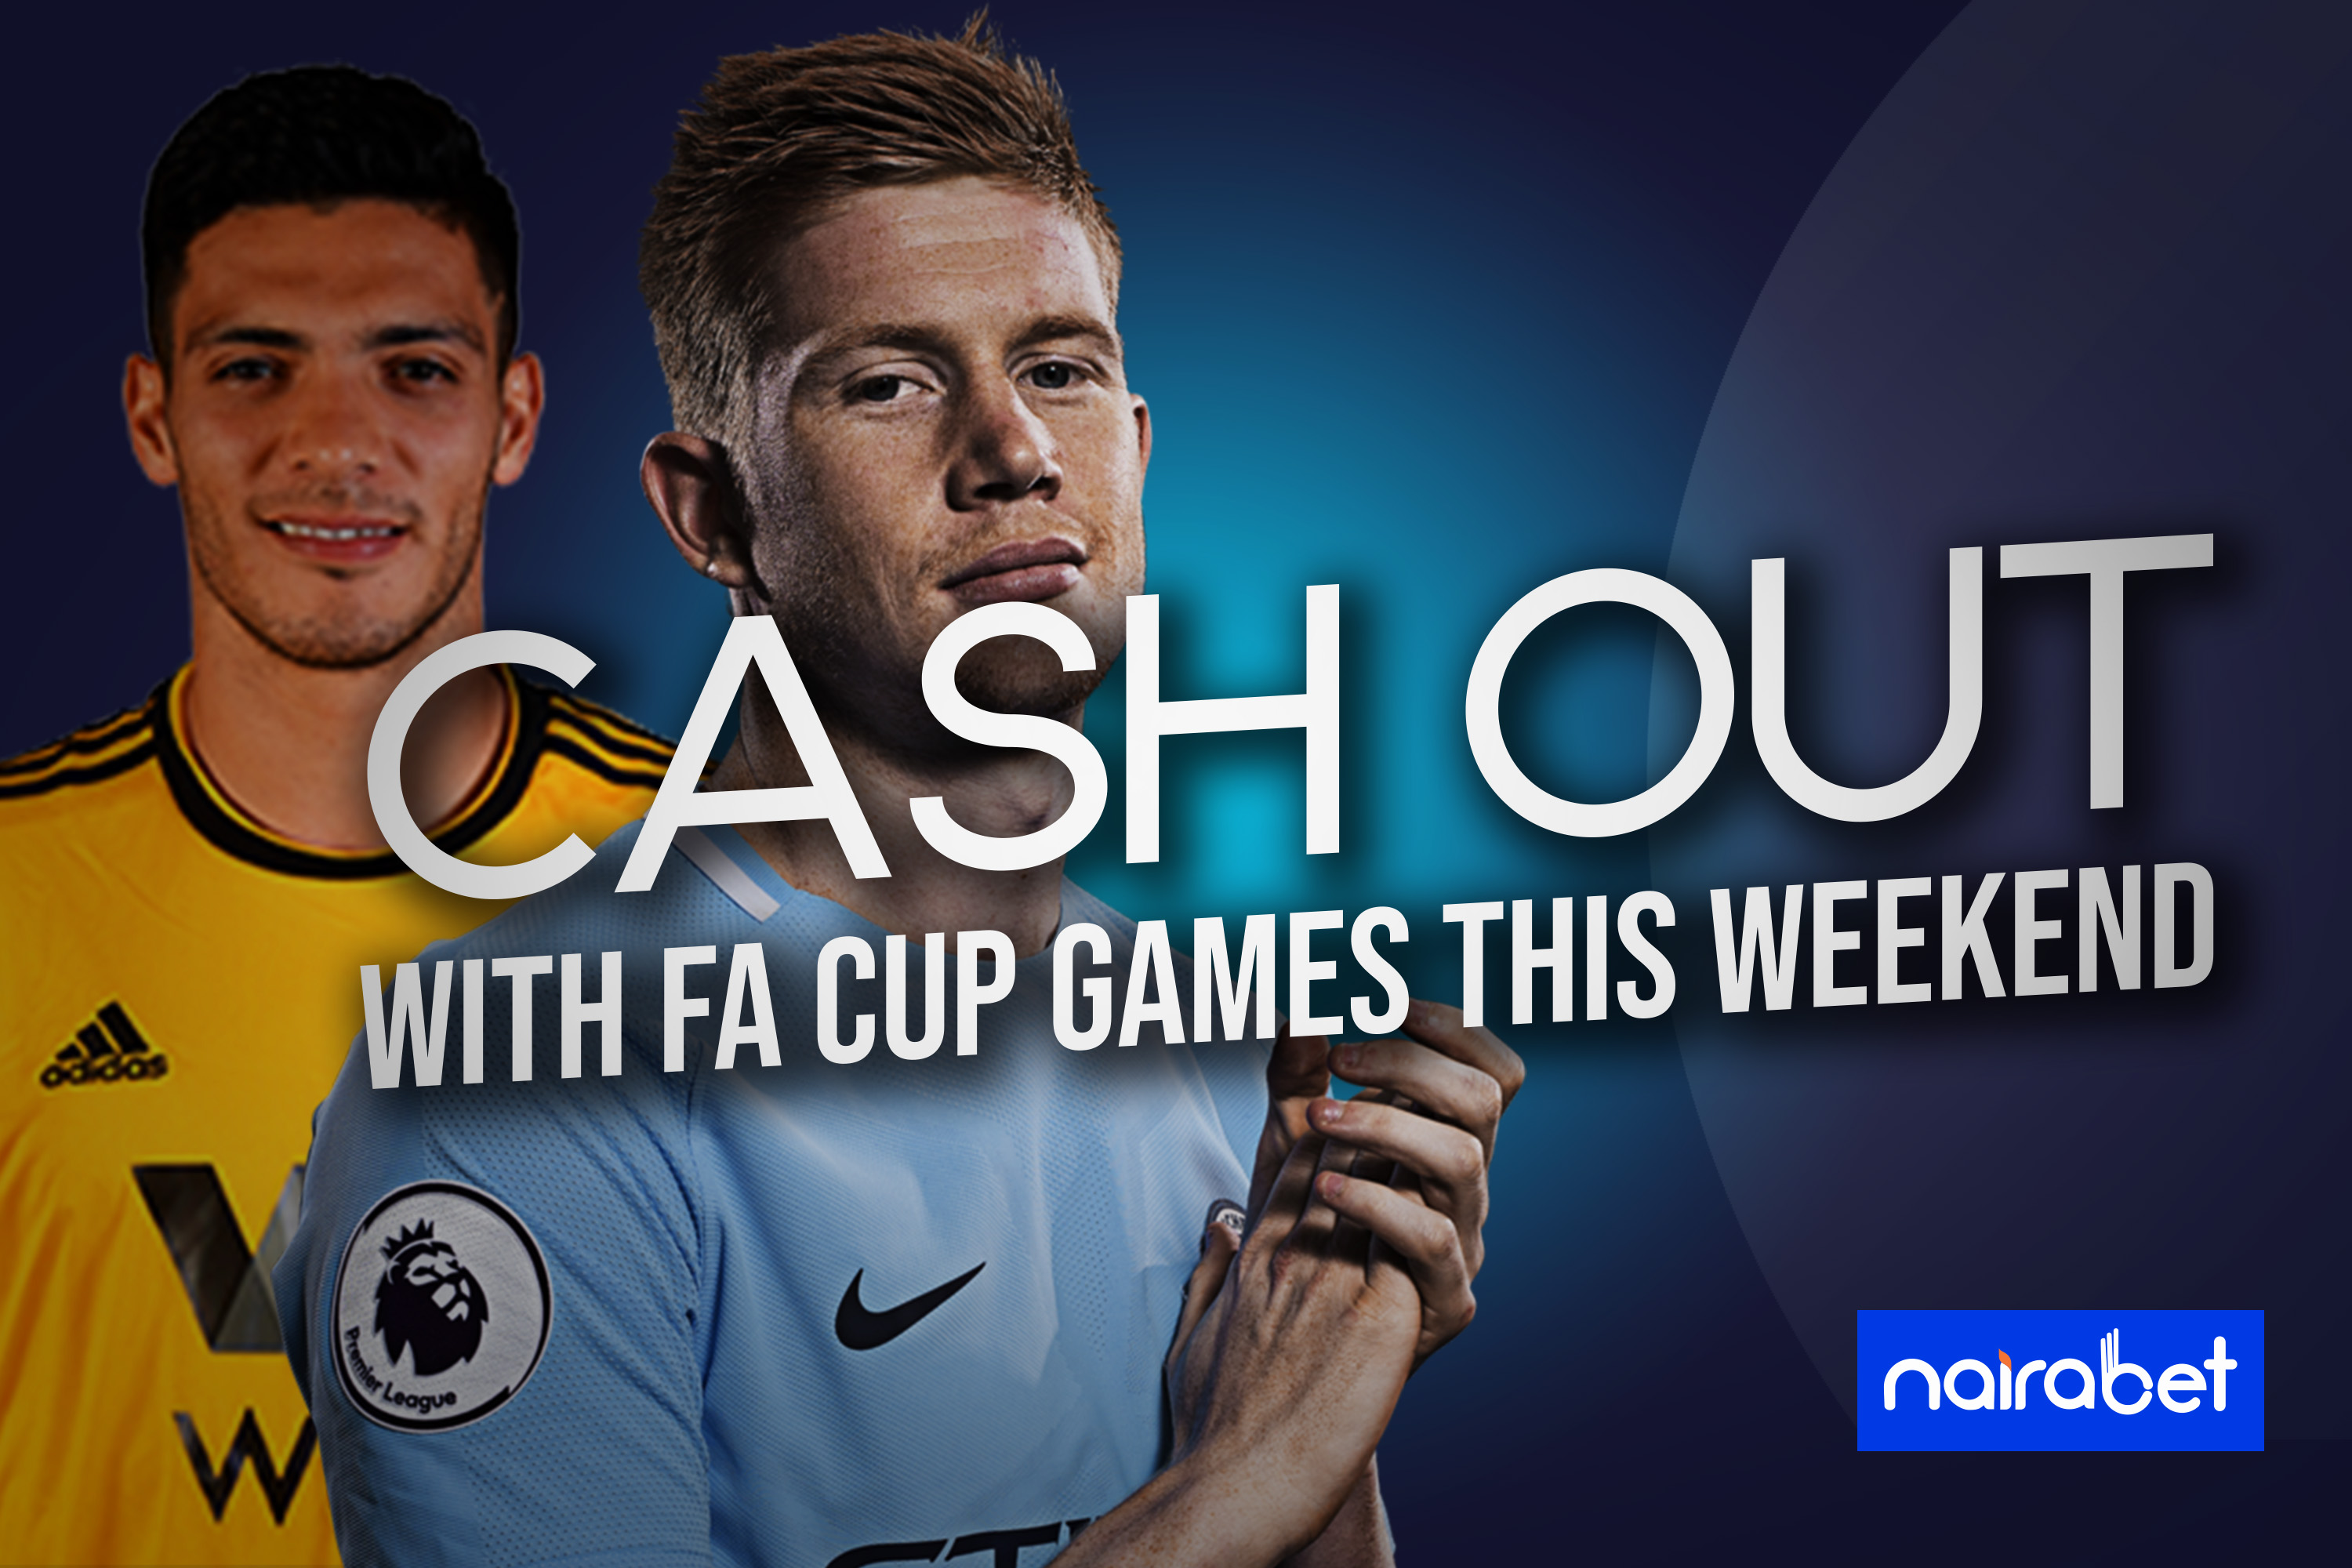 cashout FA cup games weekend